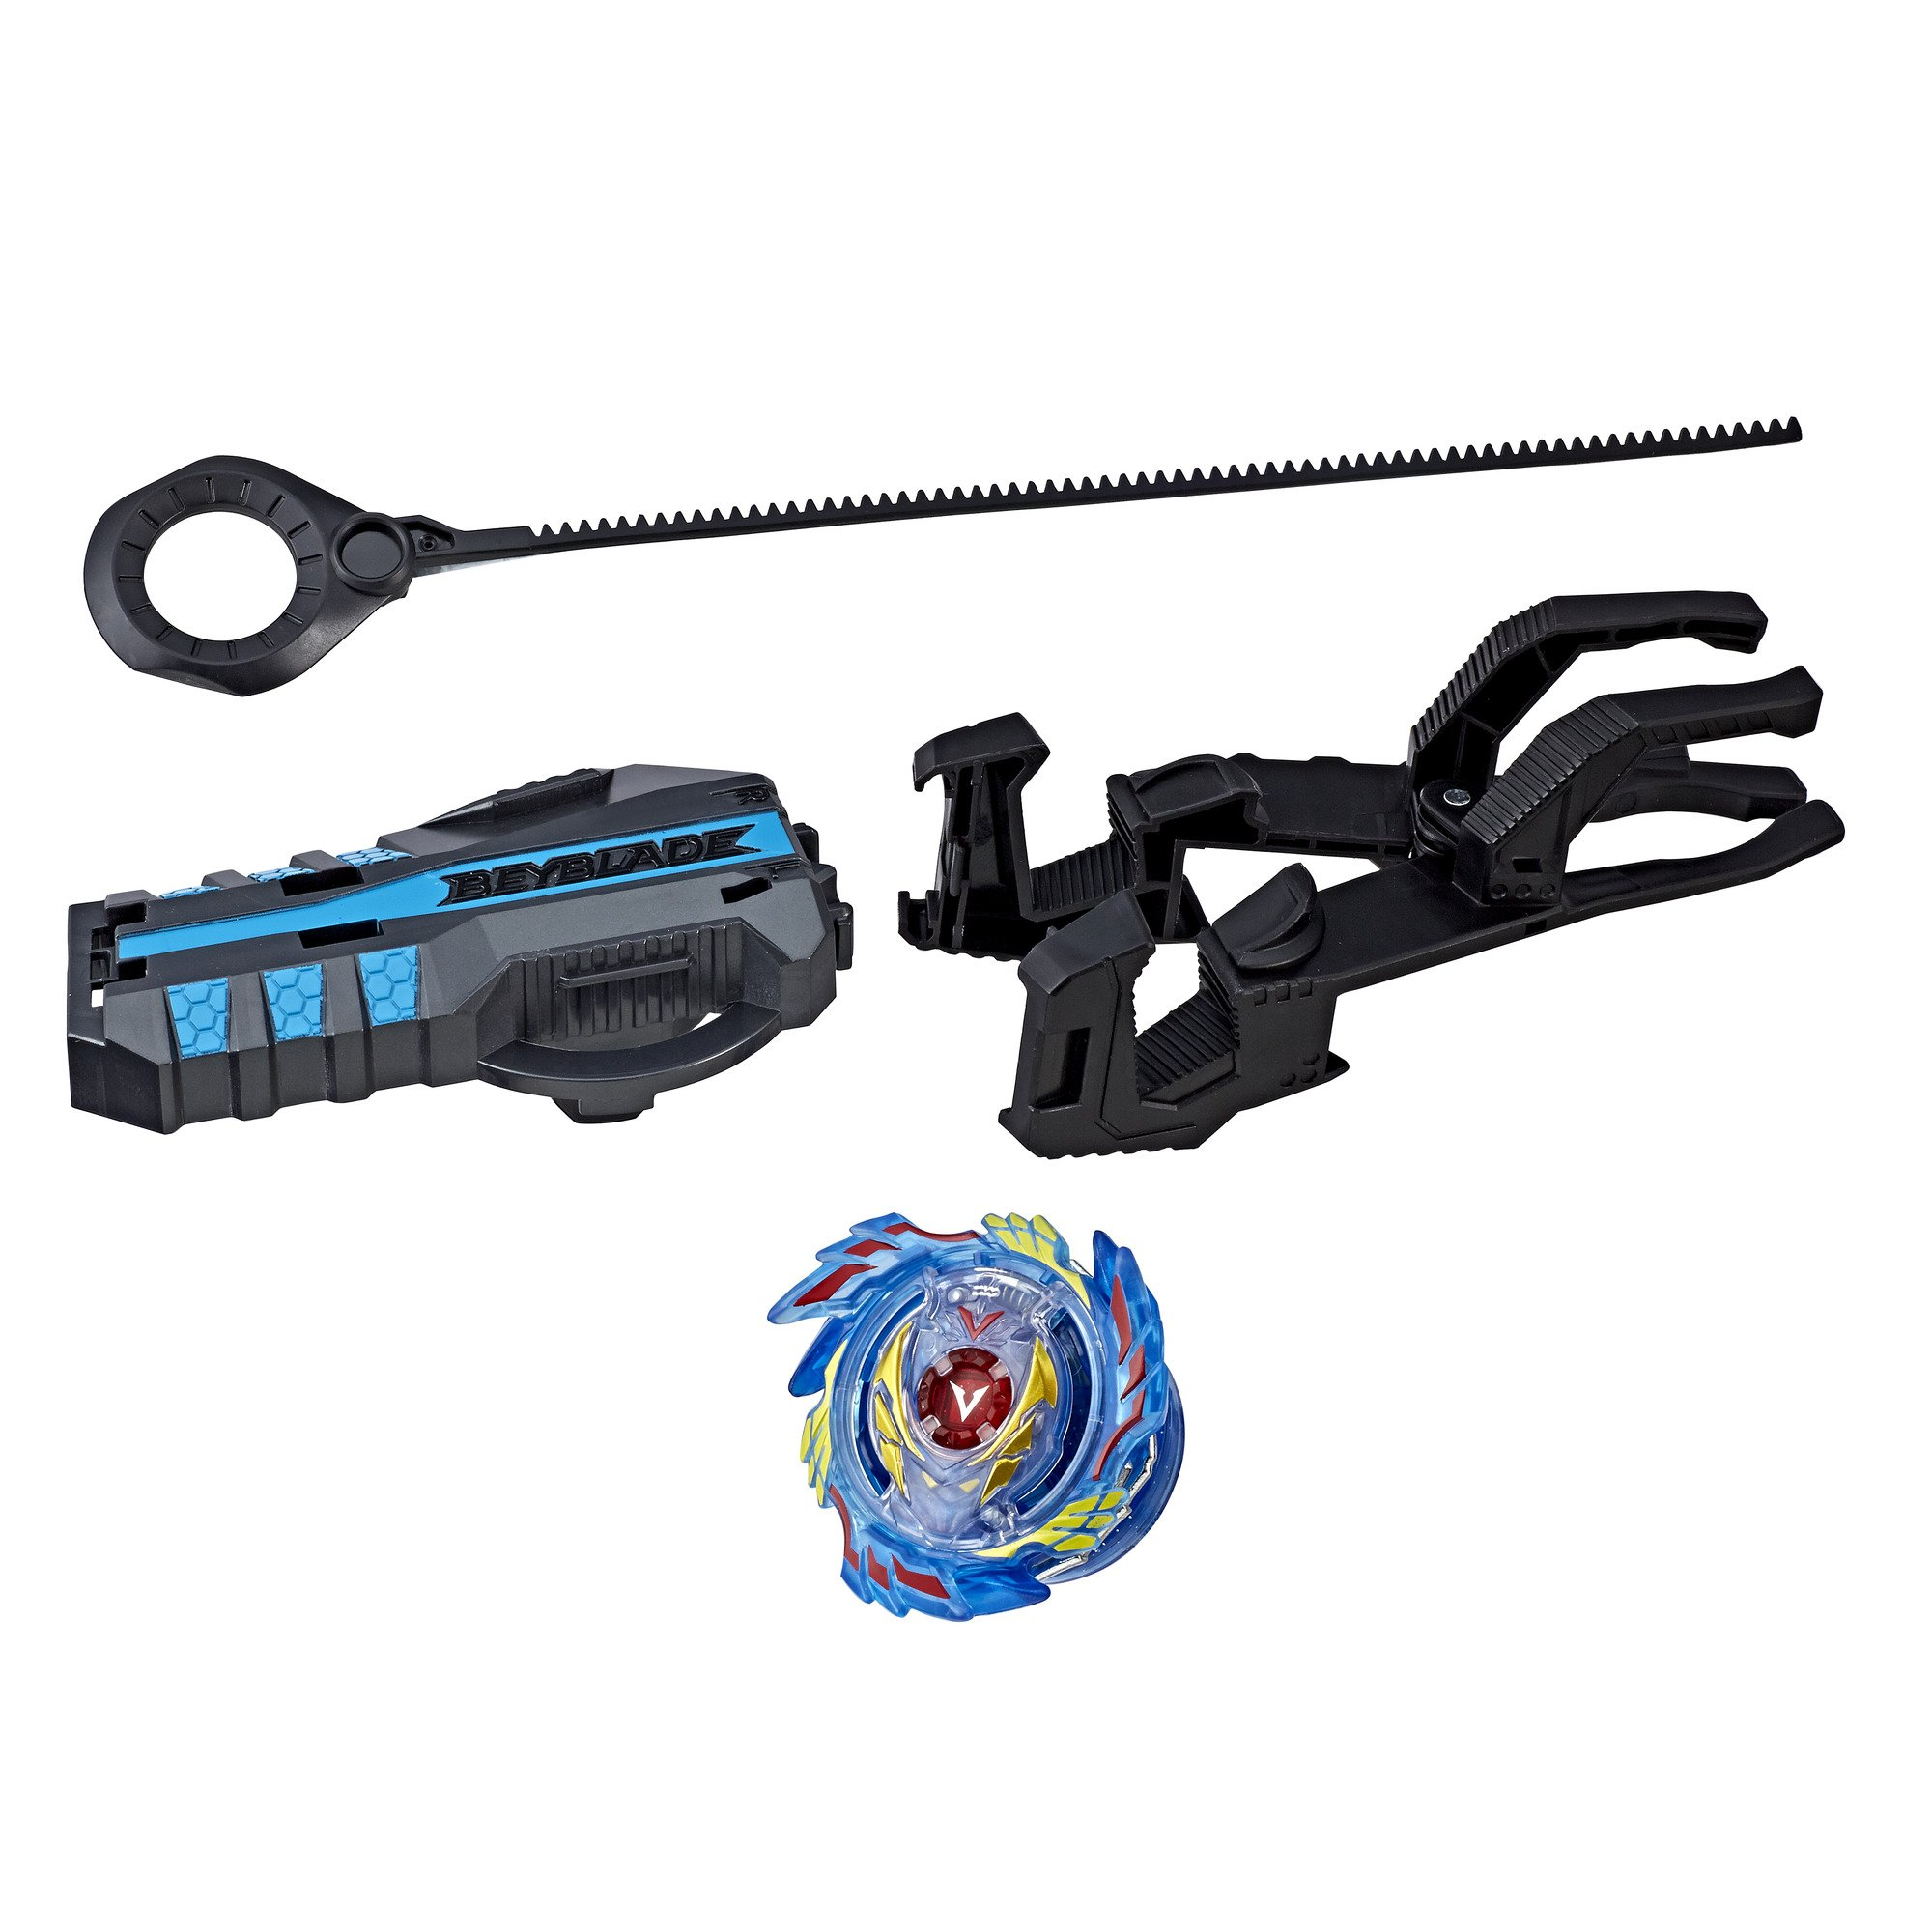 BEYBLADE RC Top AST Spinning Top Toy Playset Assortment